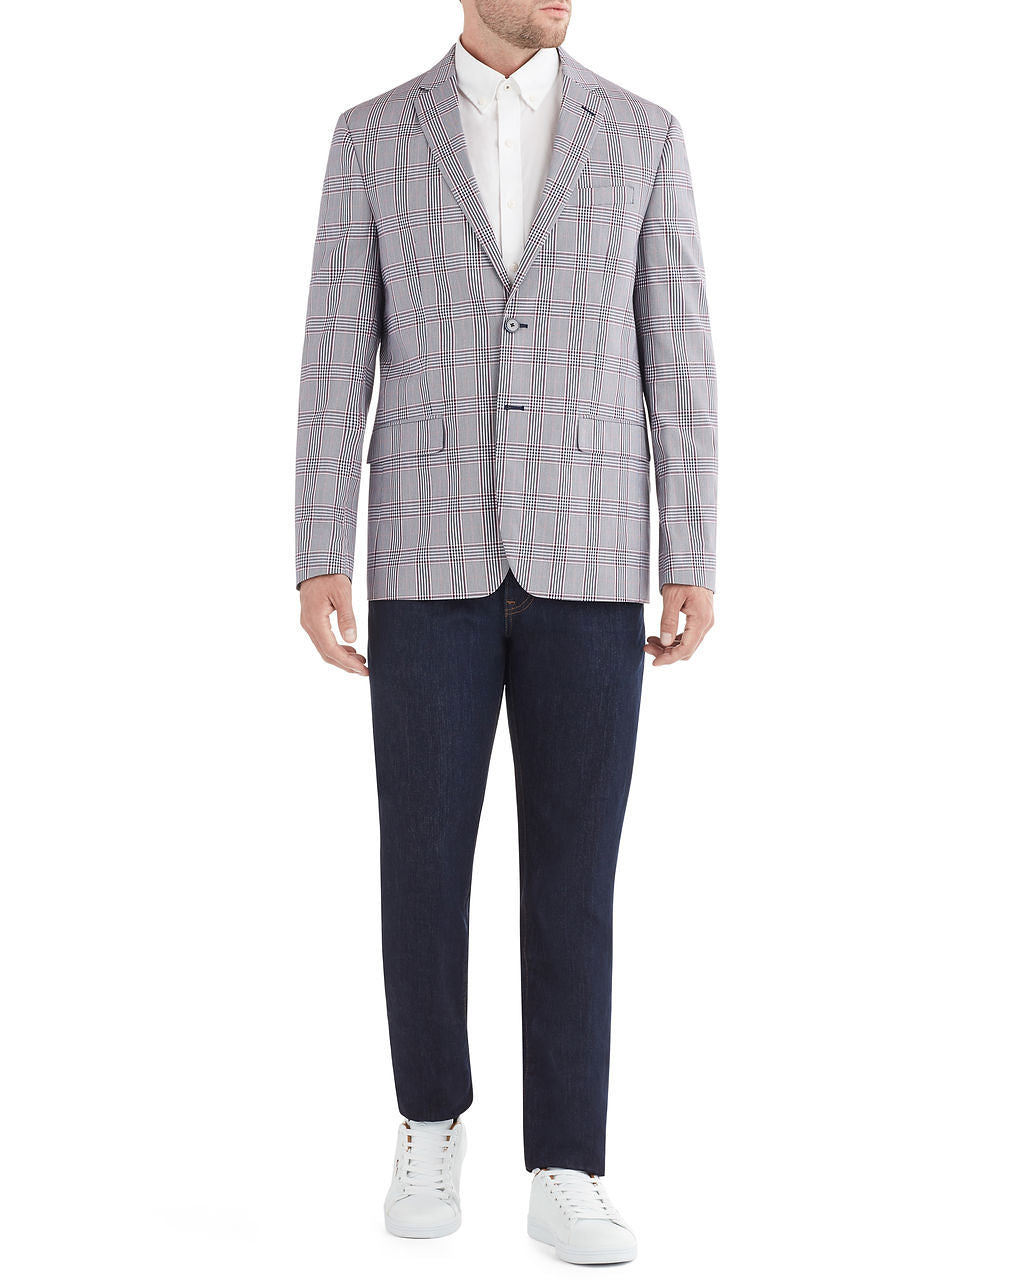 Crown Plaid Check Sportcoat Jacket - Blue and White